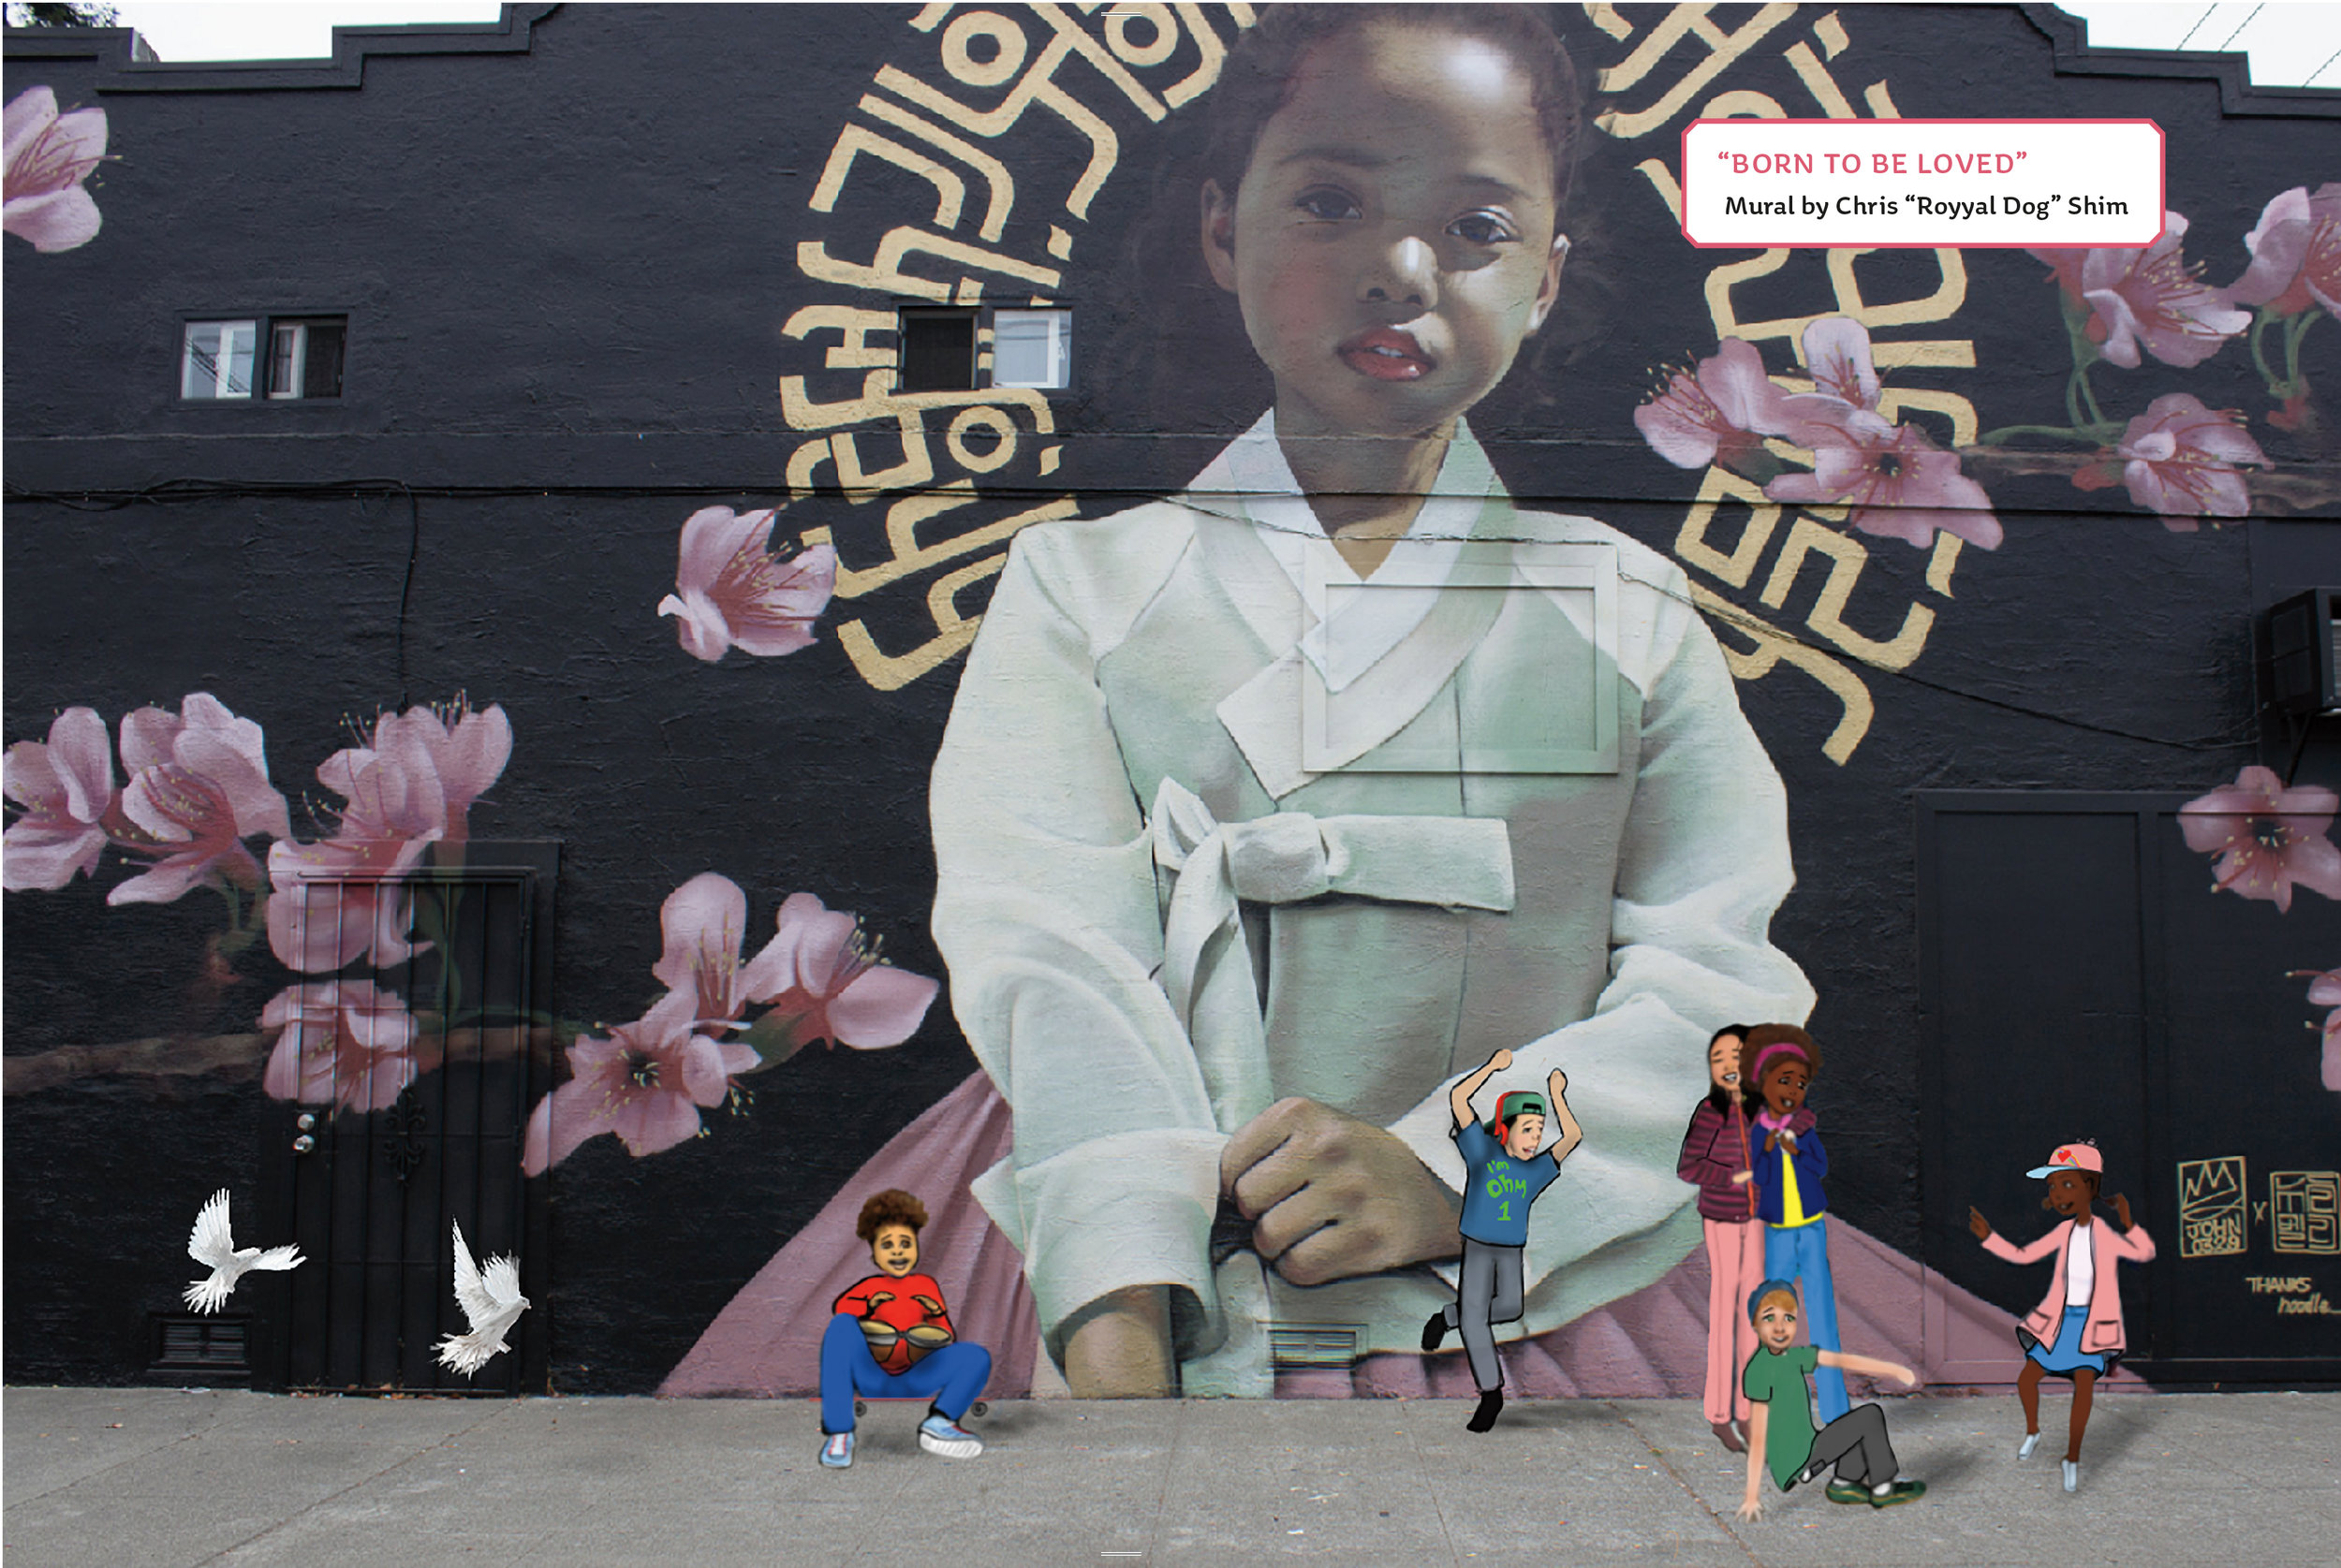 Born-to-be-loved-mural.jpg